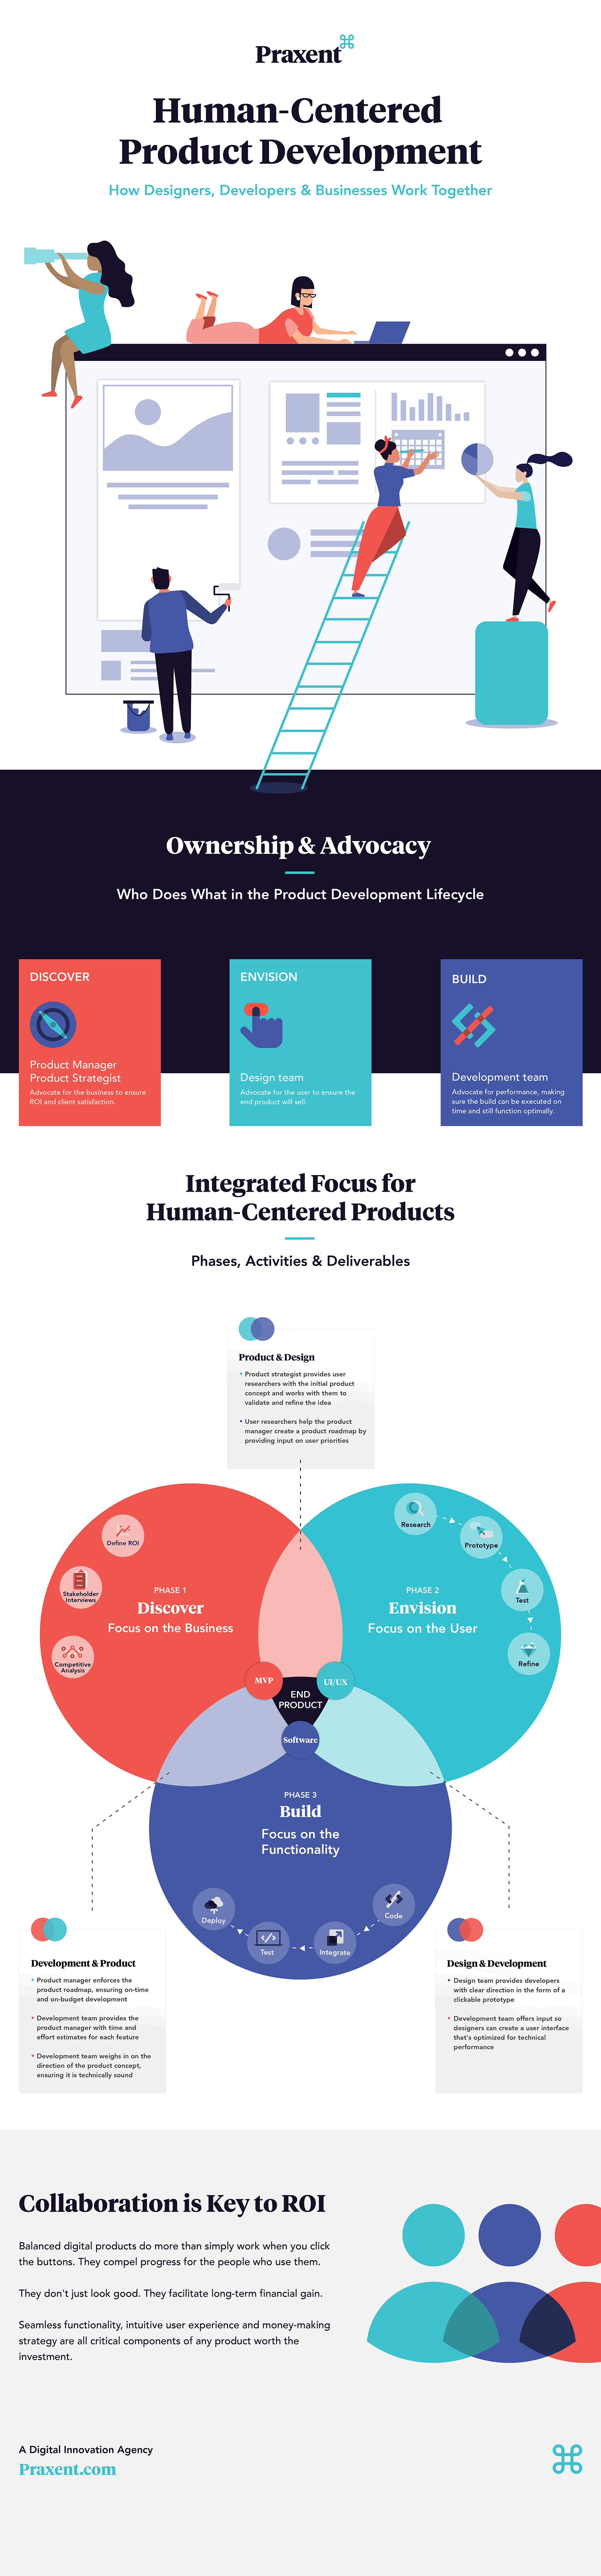 Infographic Human Centered Product Development Praxent